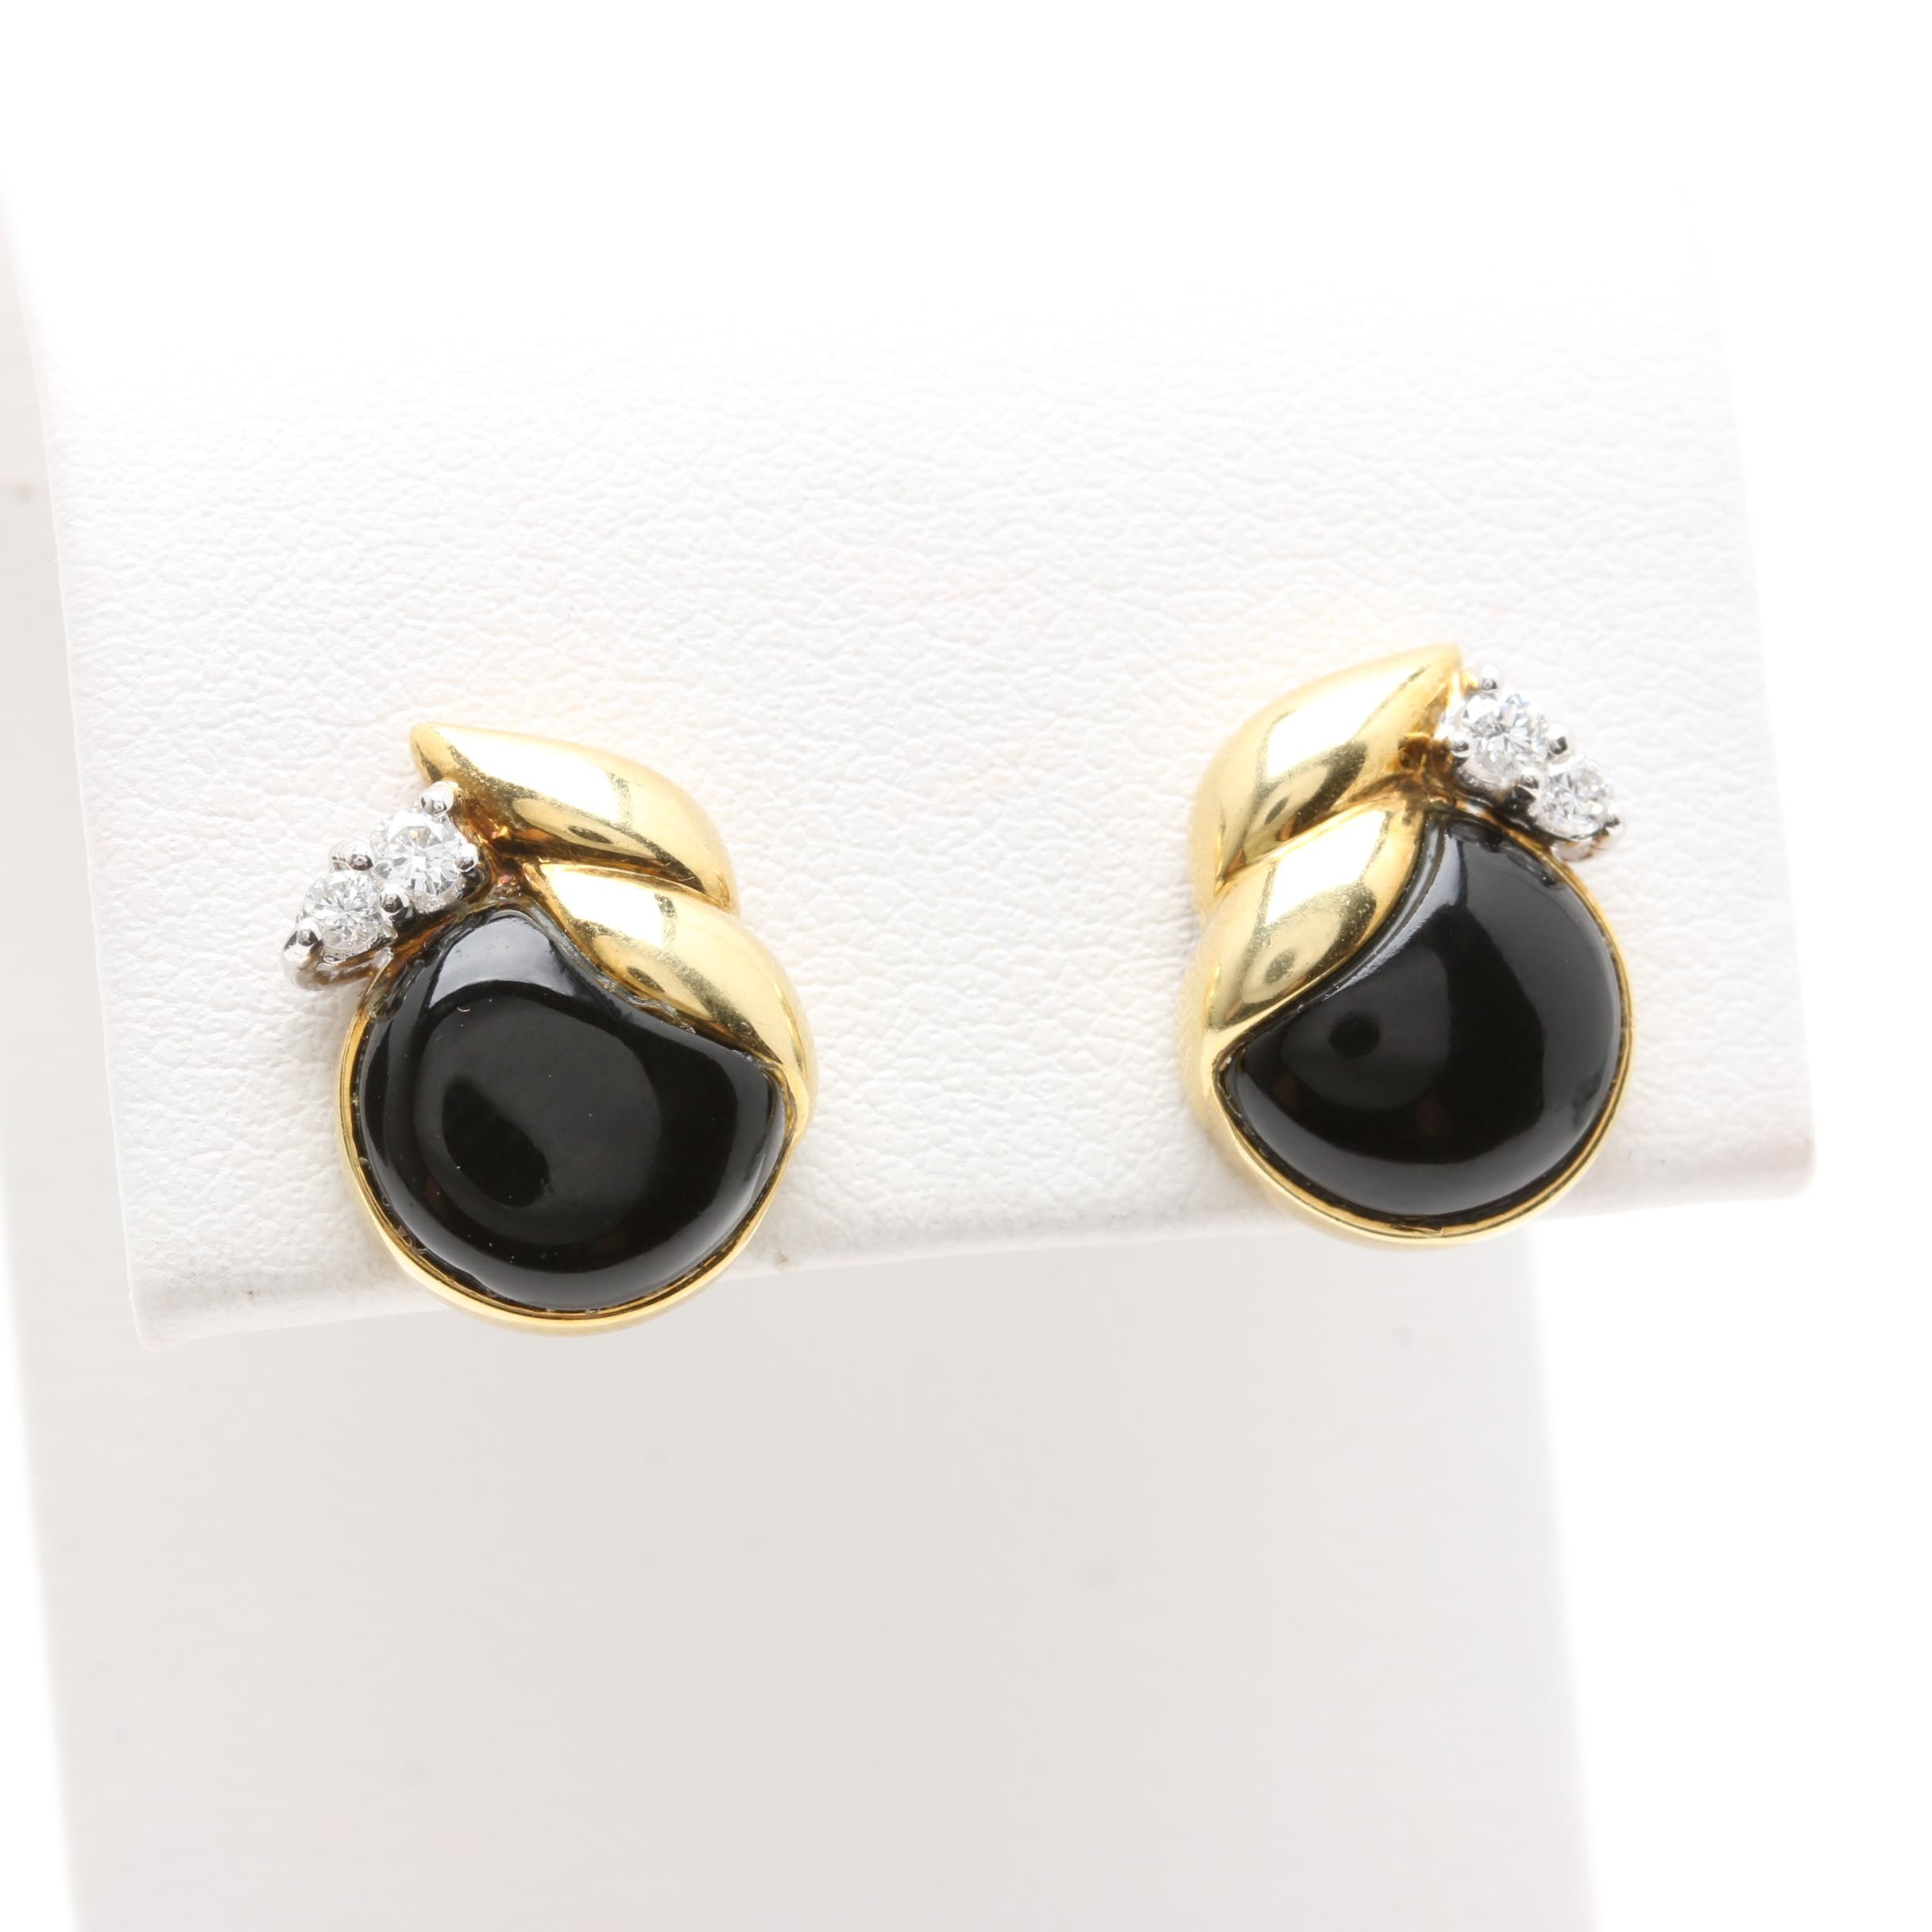 14K Yellow Gold Black Onyx and Diamond Earrings